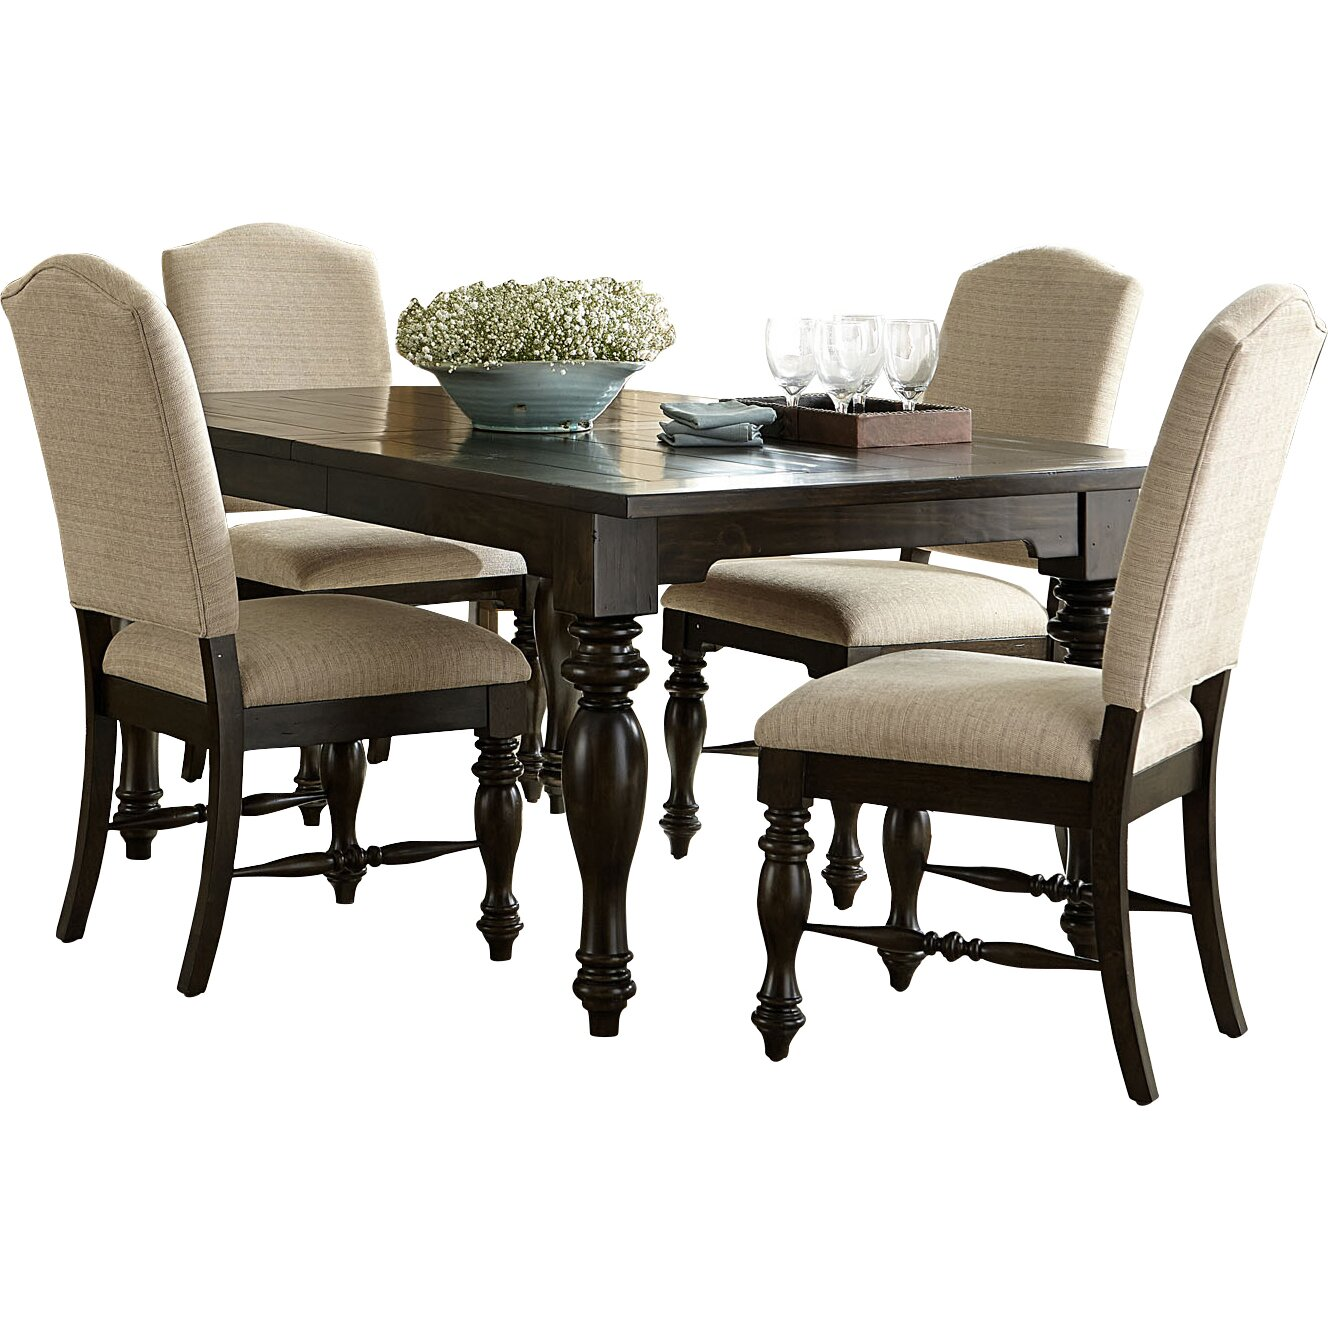 Dining Table Co Darby Home Co Ragland Dining Table Wayfair